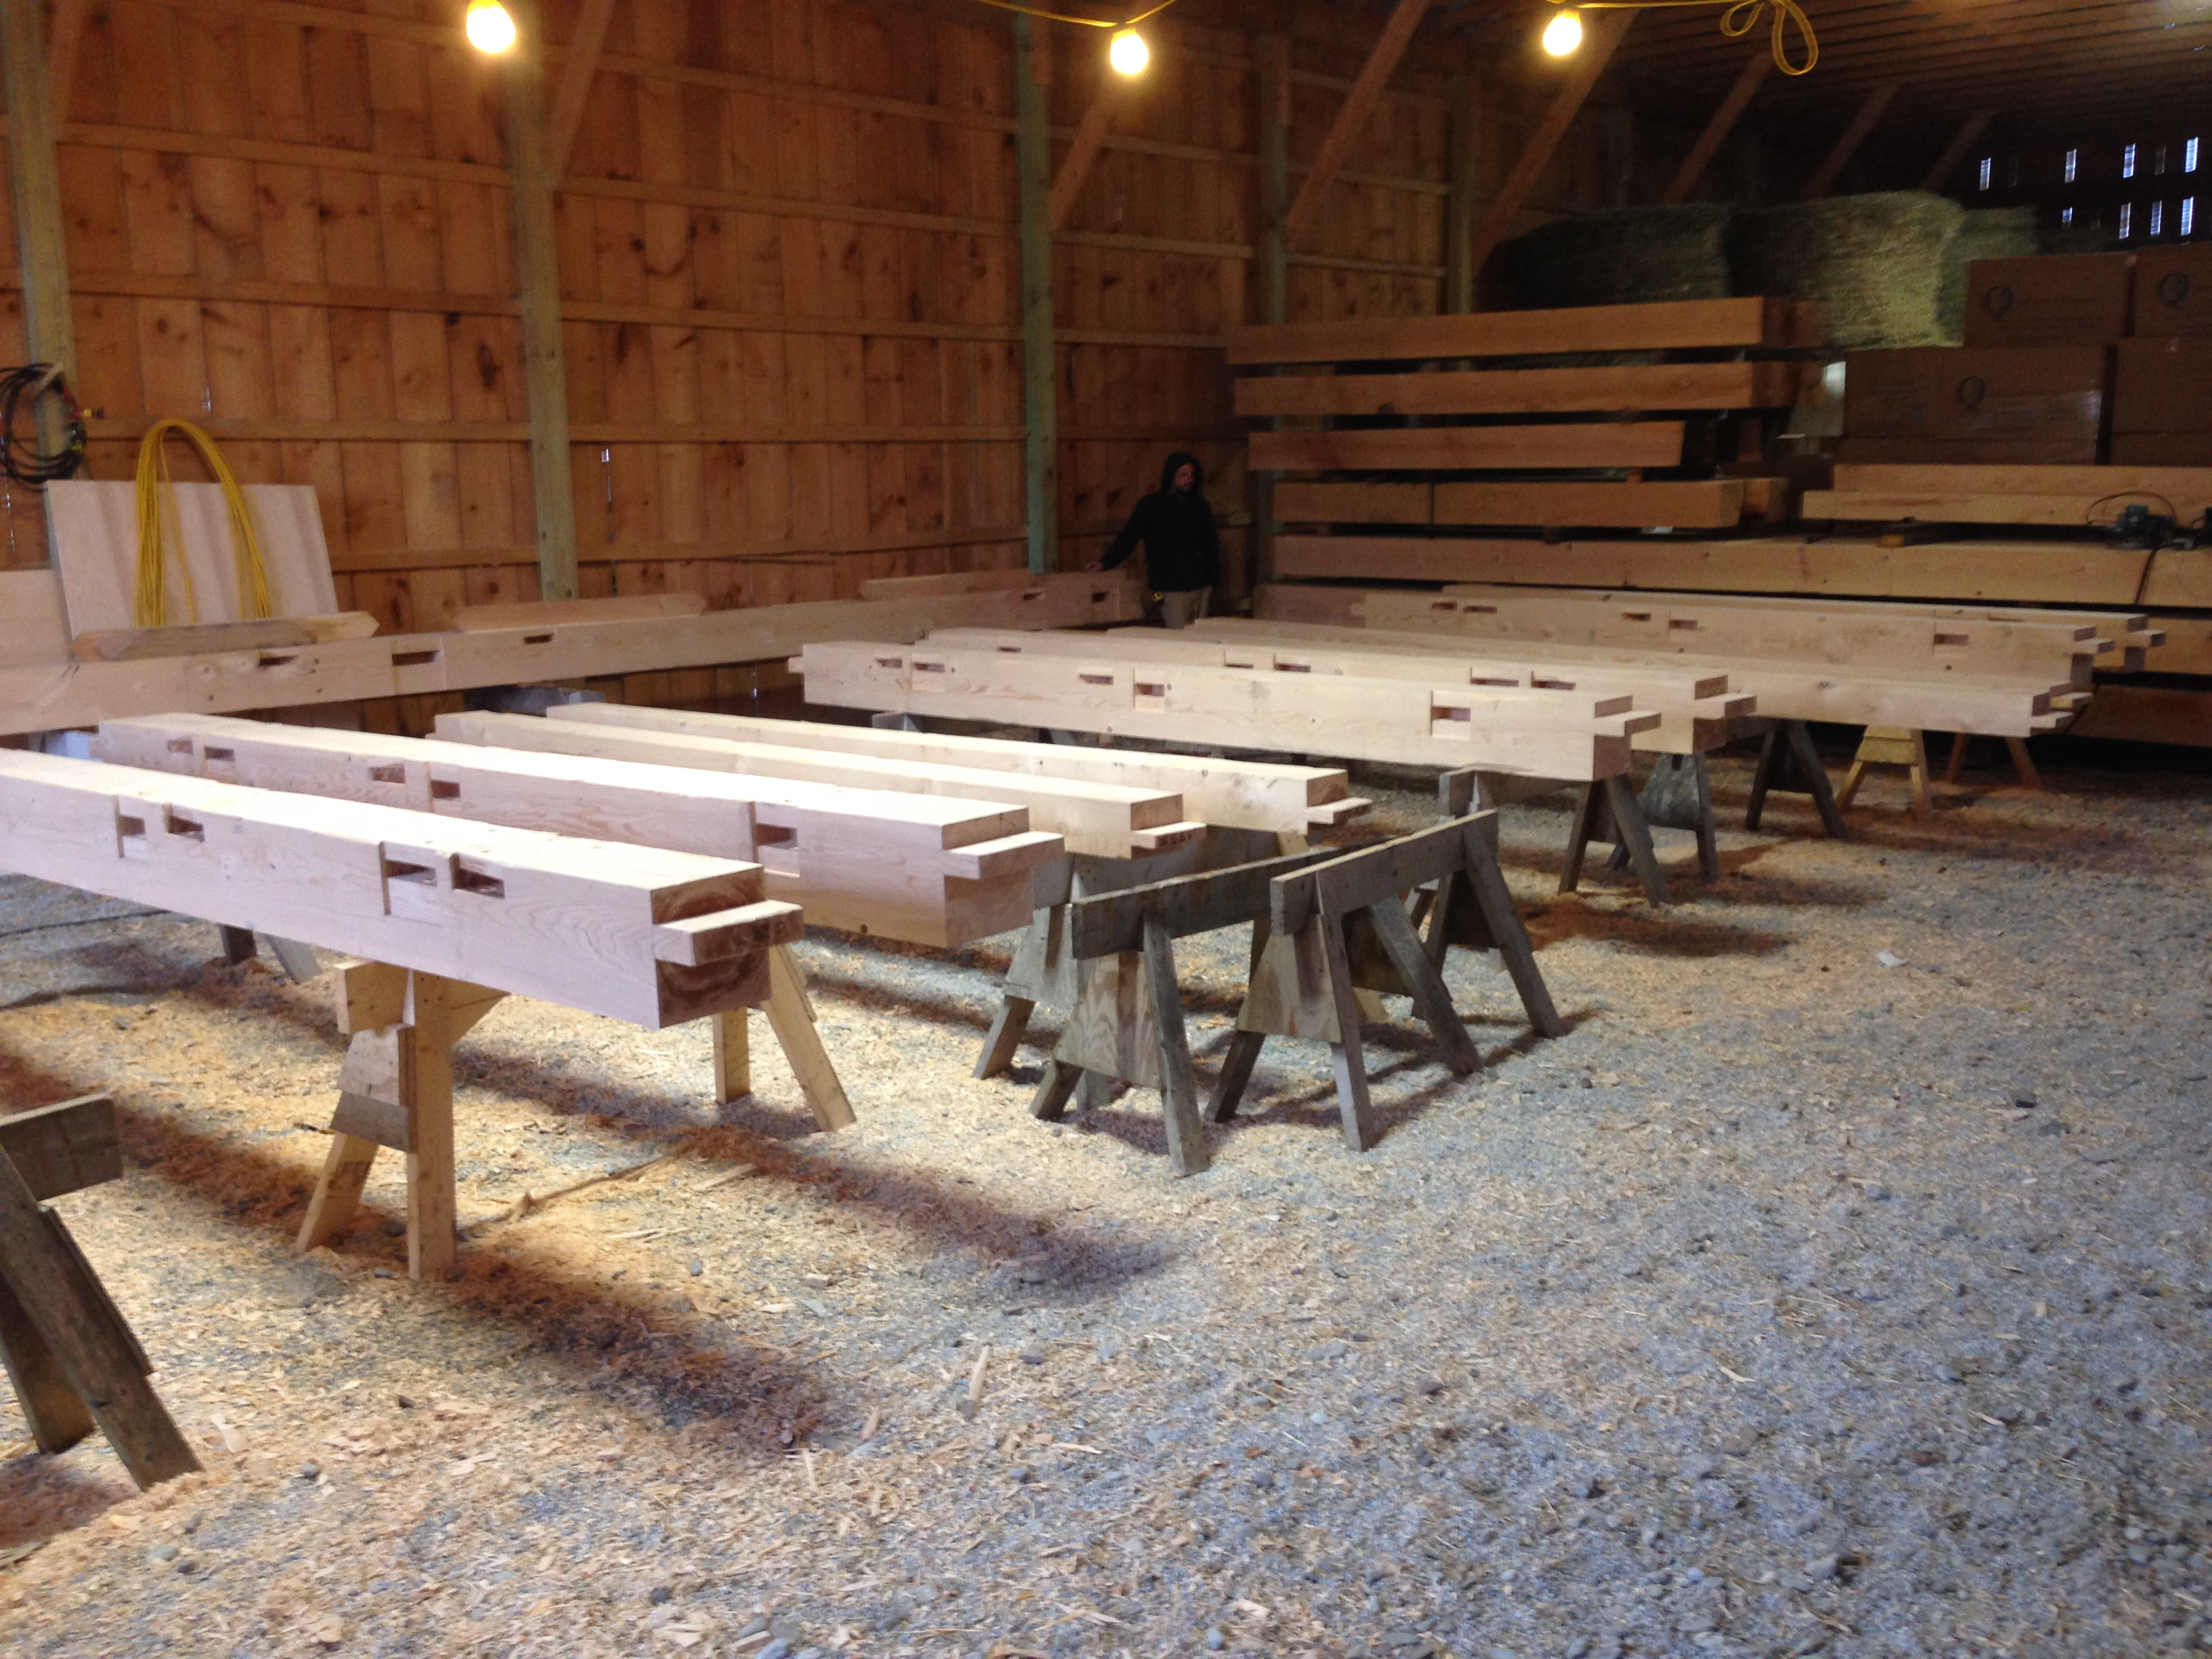 Post joinery is cut for timber frame